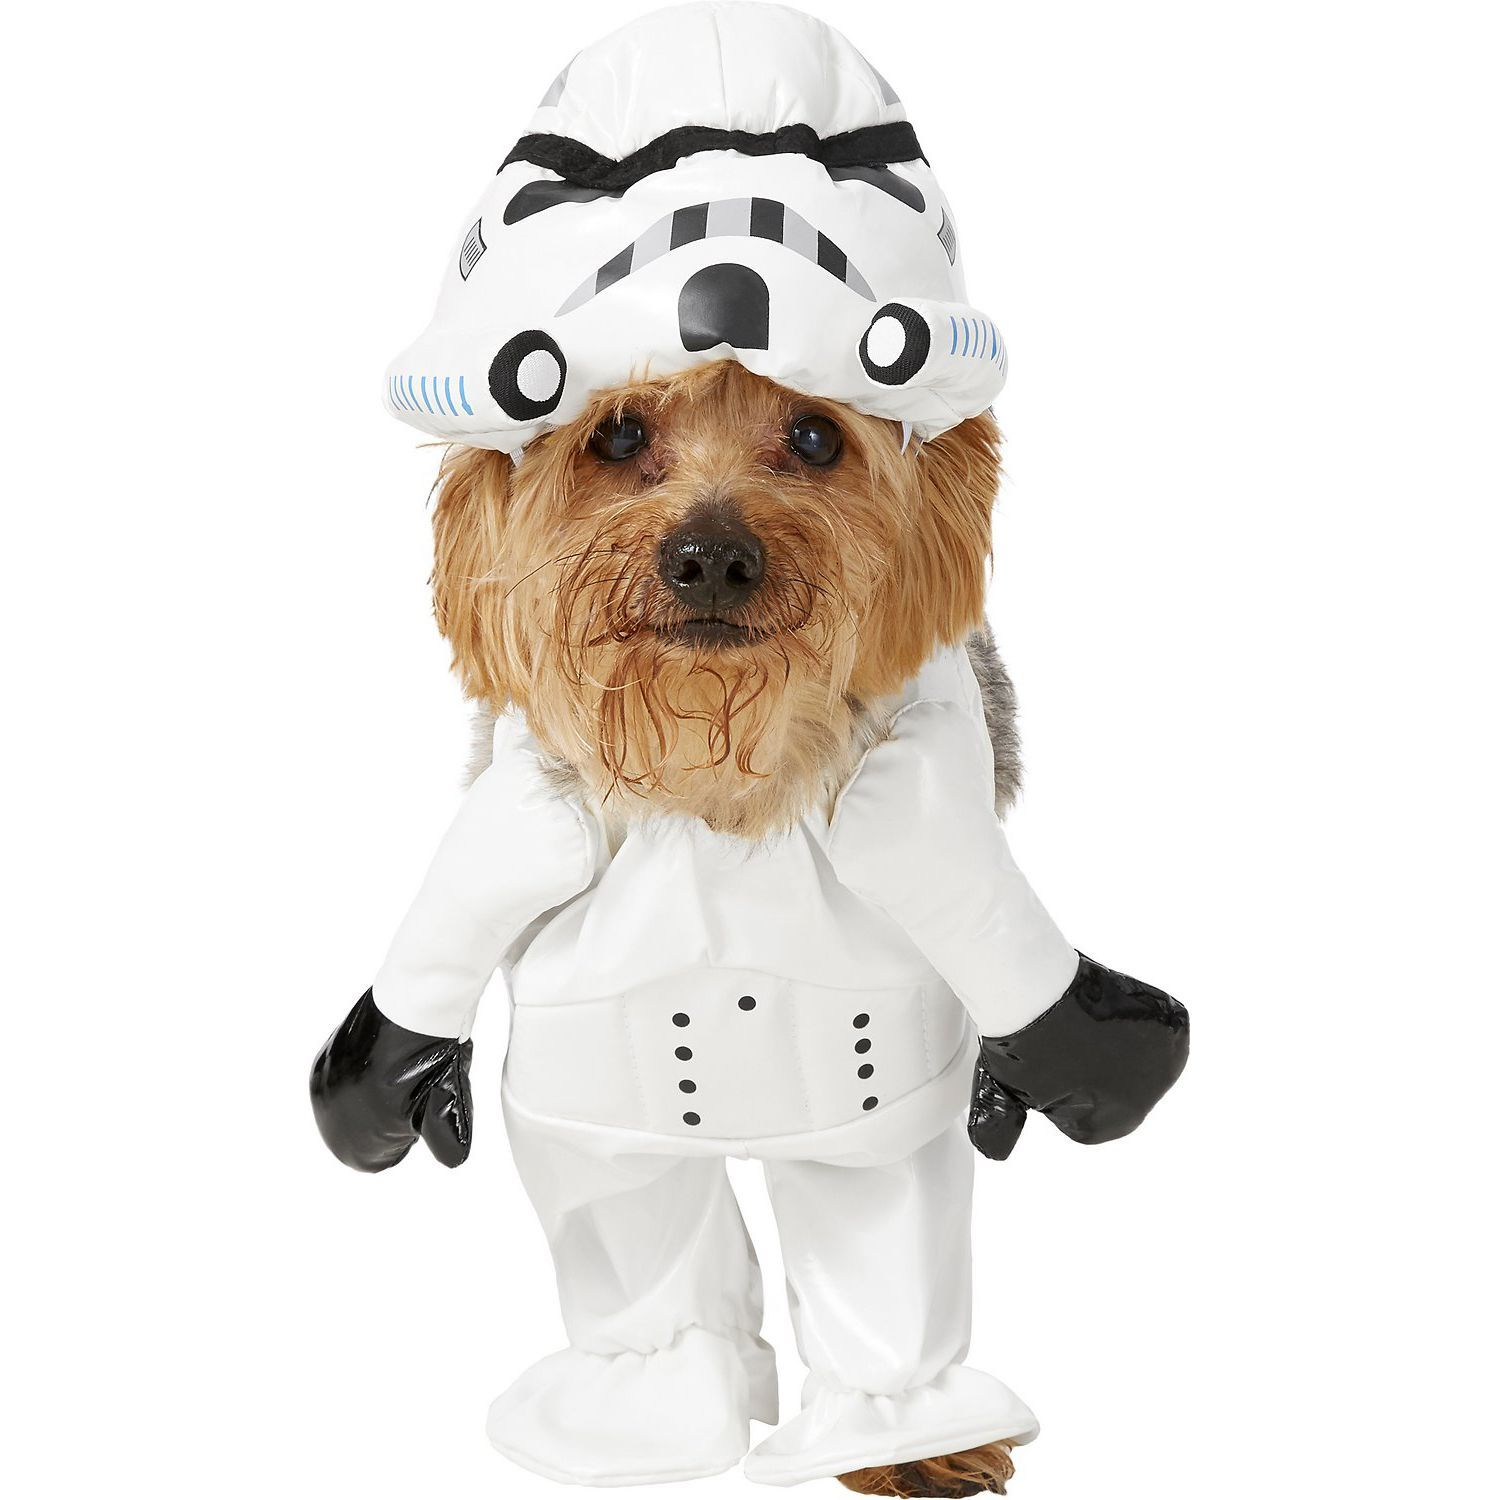 35 Funny Dog and Puppy Costumes for 2019 , Cute Pet